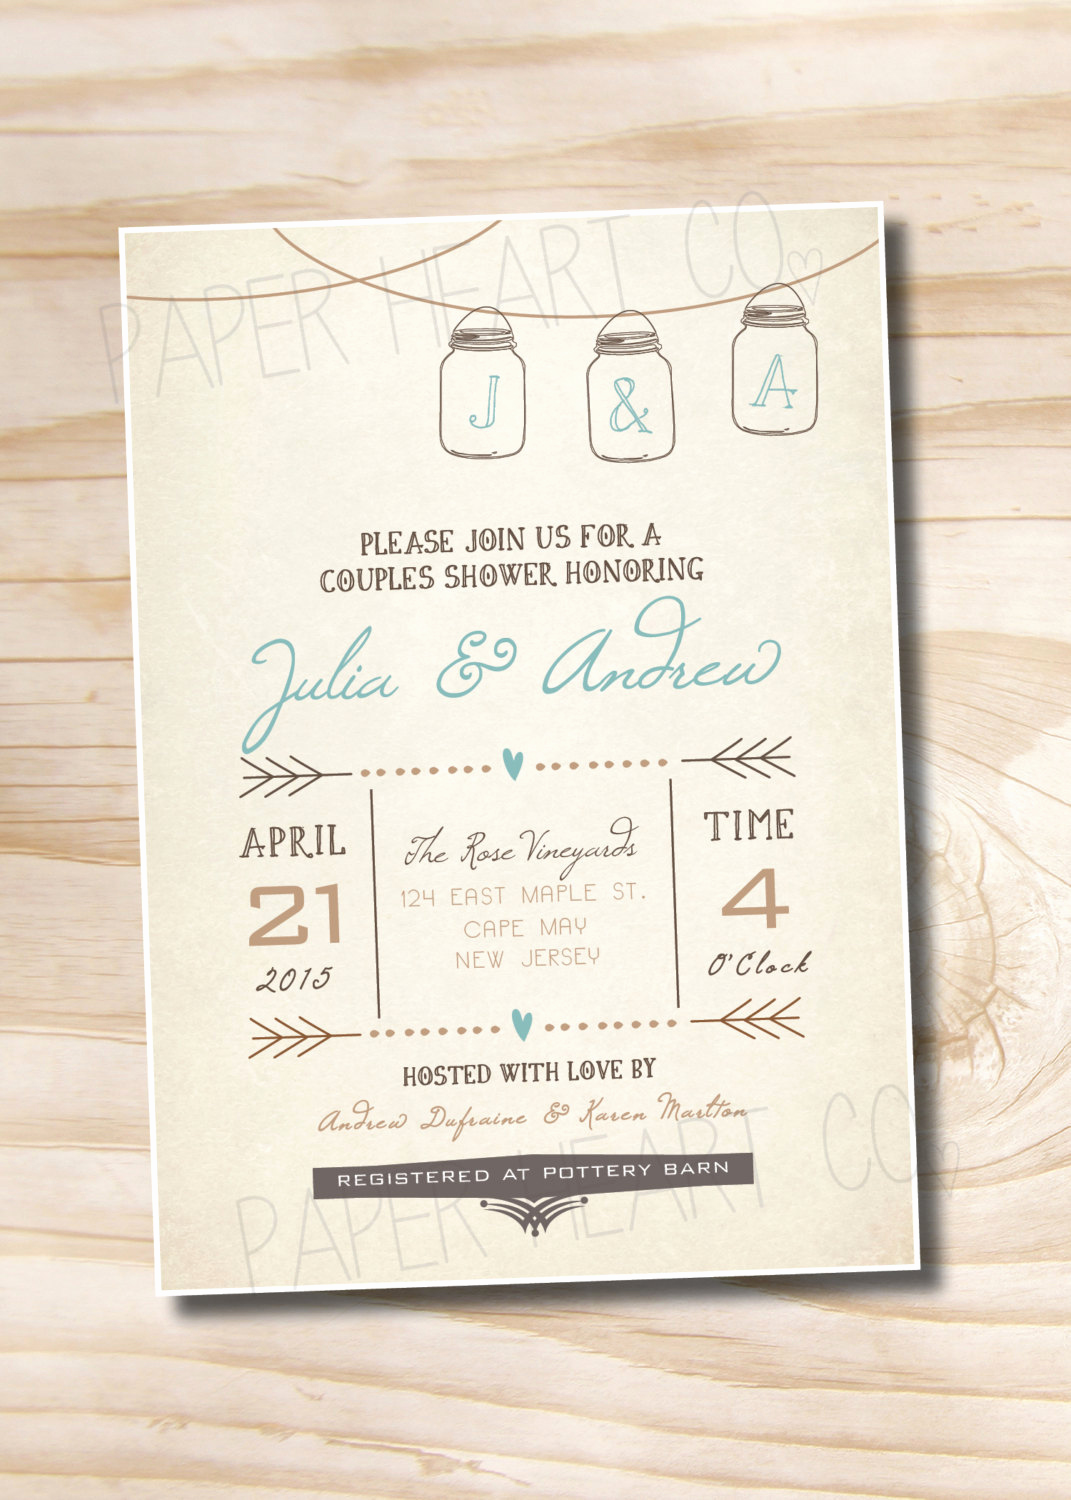 Couple Shower Invitation Wording Inspirational Mason Jar Invitation Couples Shower Bridal Shower Baby Shower